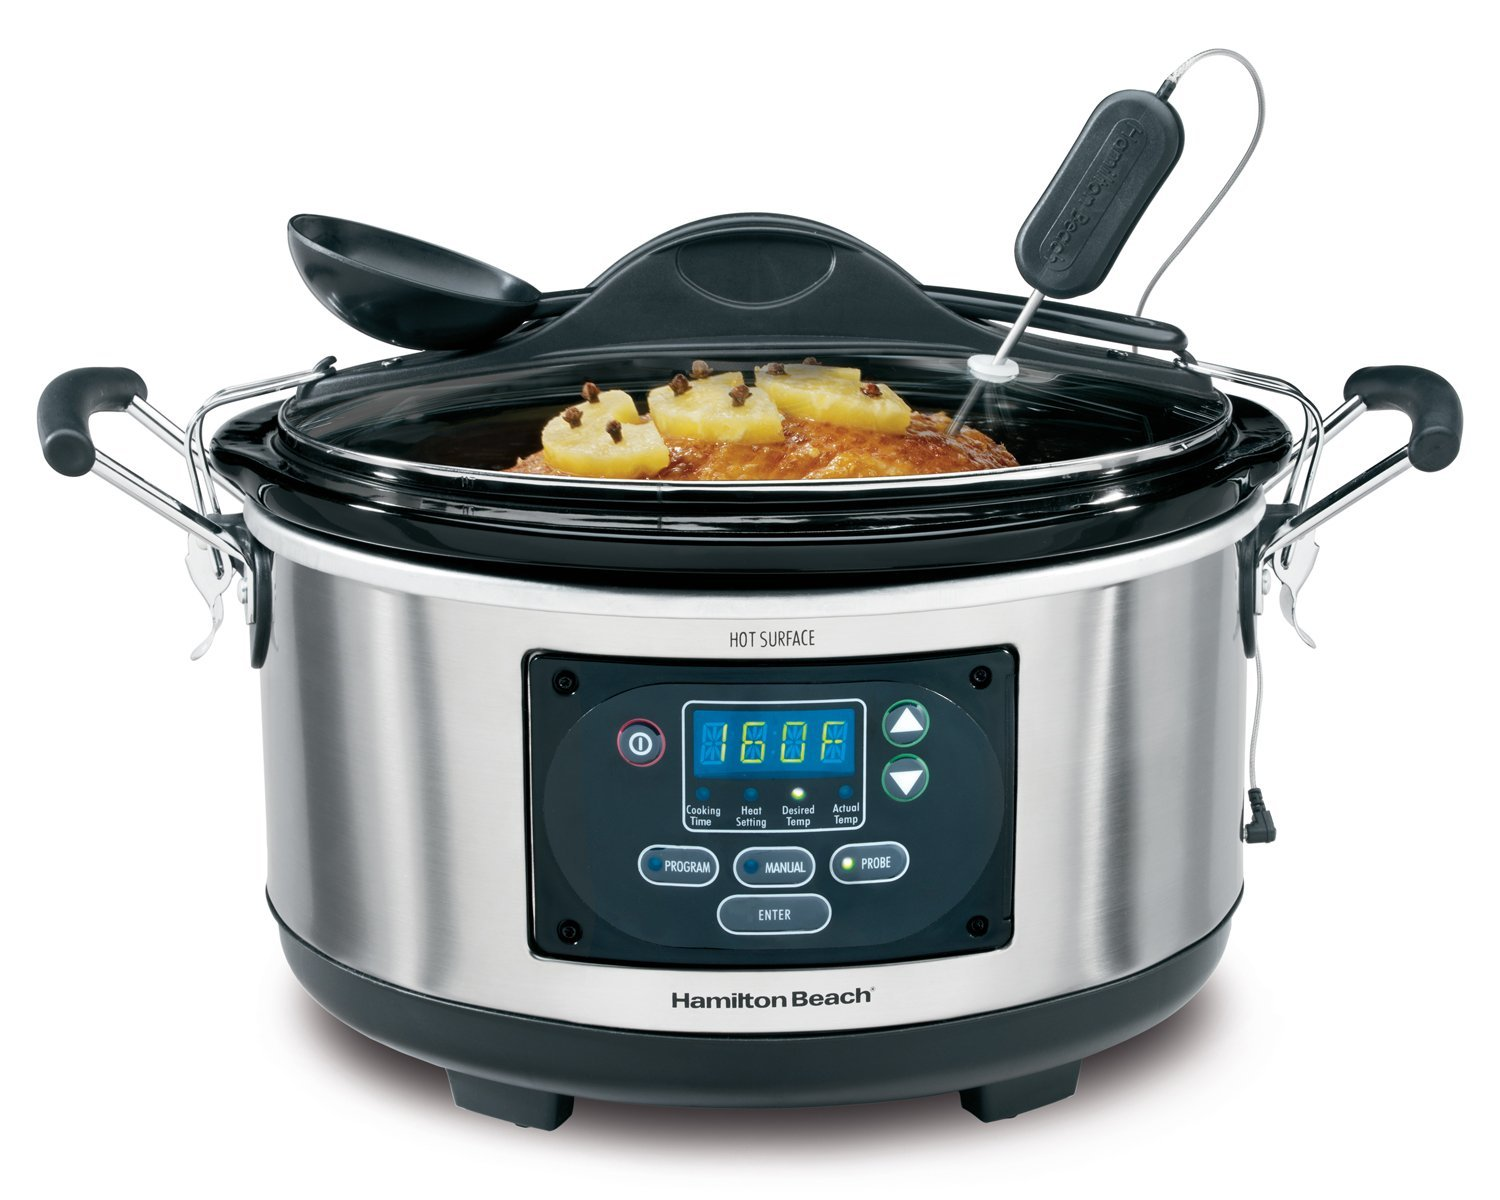 Hamilton Beach (33967A) Slow Cooker With Temperature Probe, 6 Quart, Programmable, Stainless Steel (Certified Refurbished)